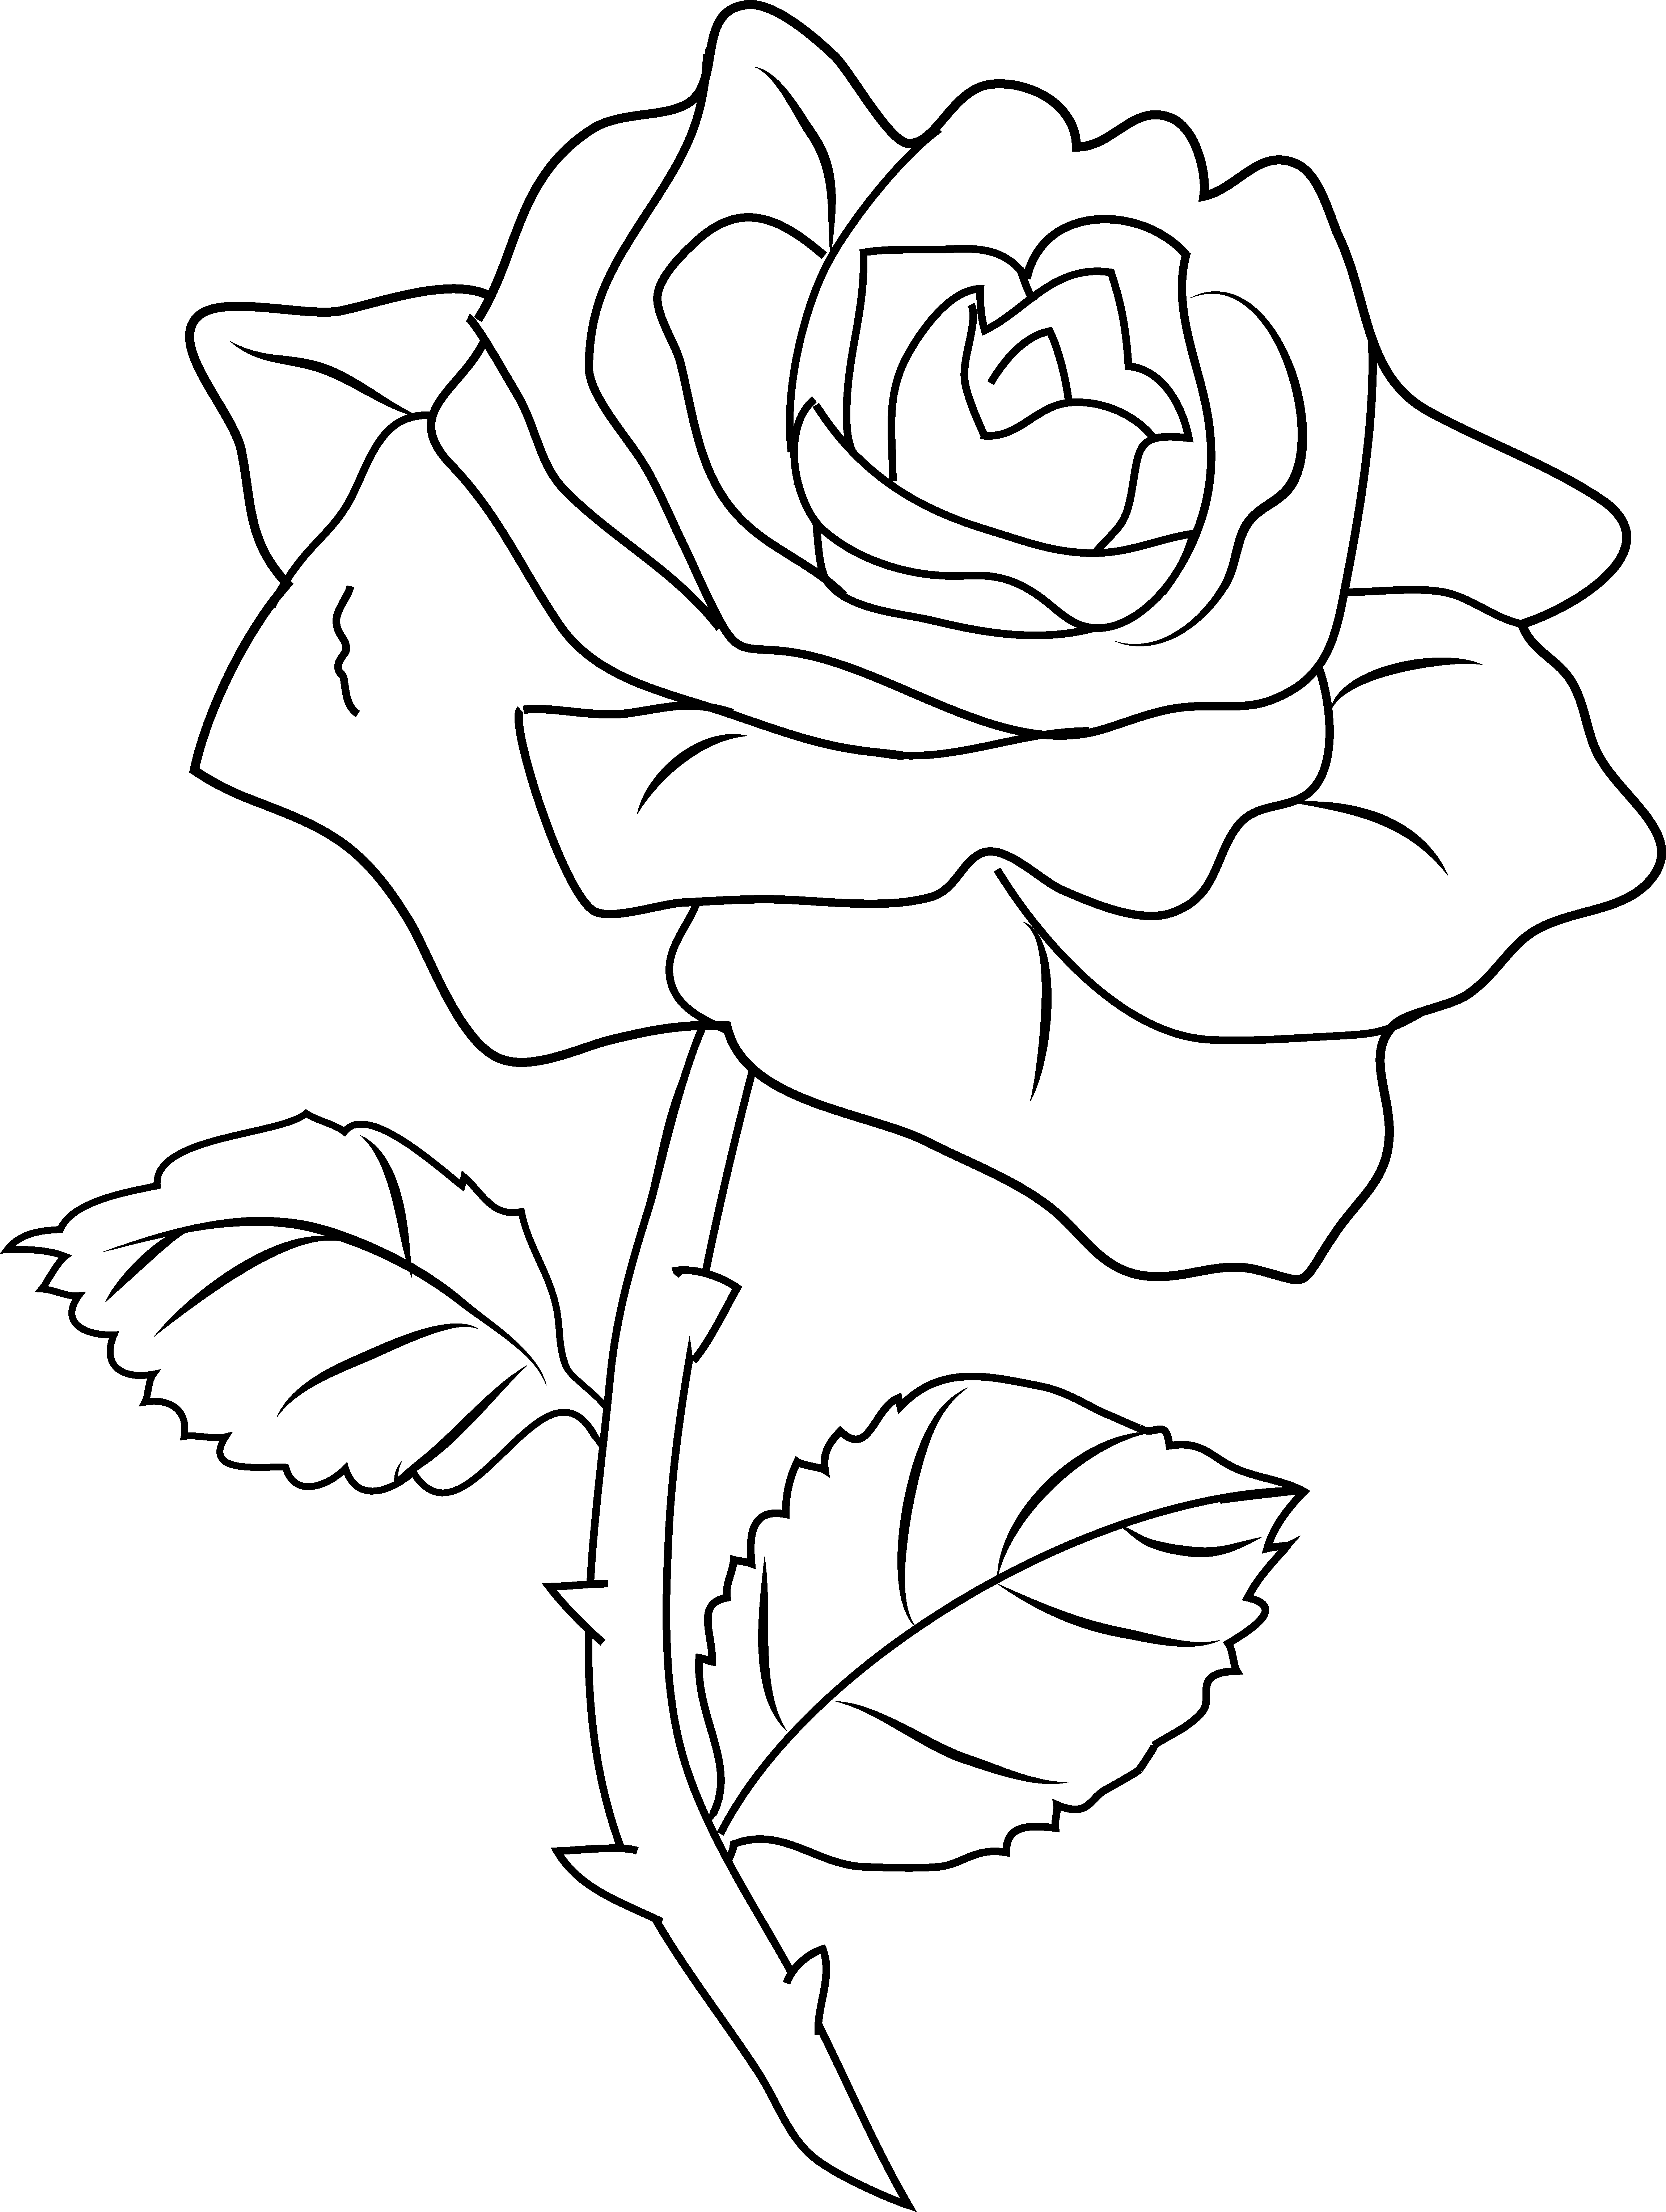 outline pictures of flowers for colouring rose color clipart 20 free cliparts download images on colouring flowers of outline for pictures